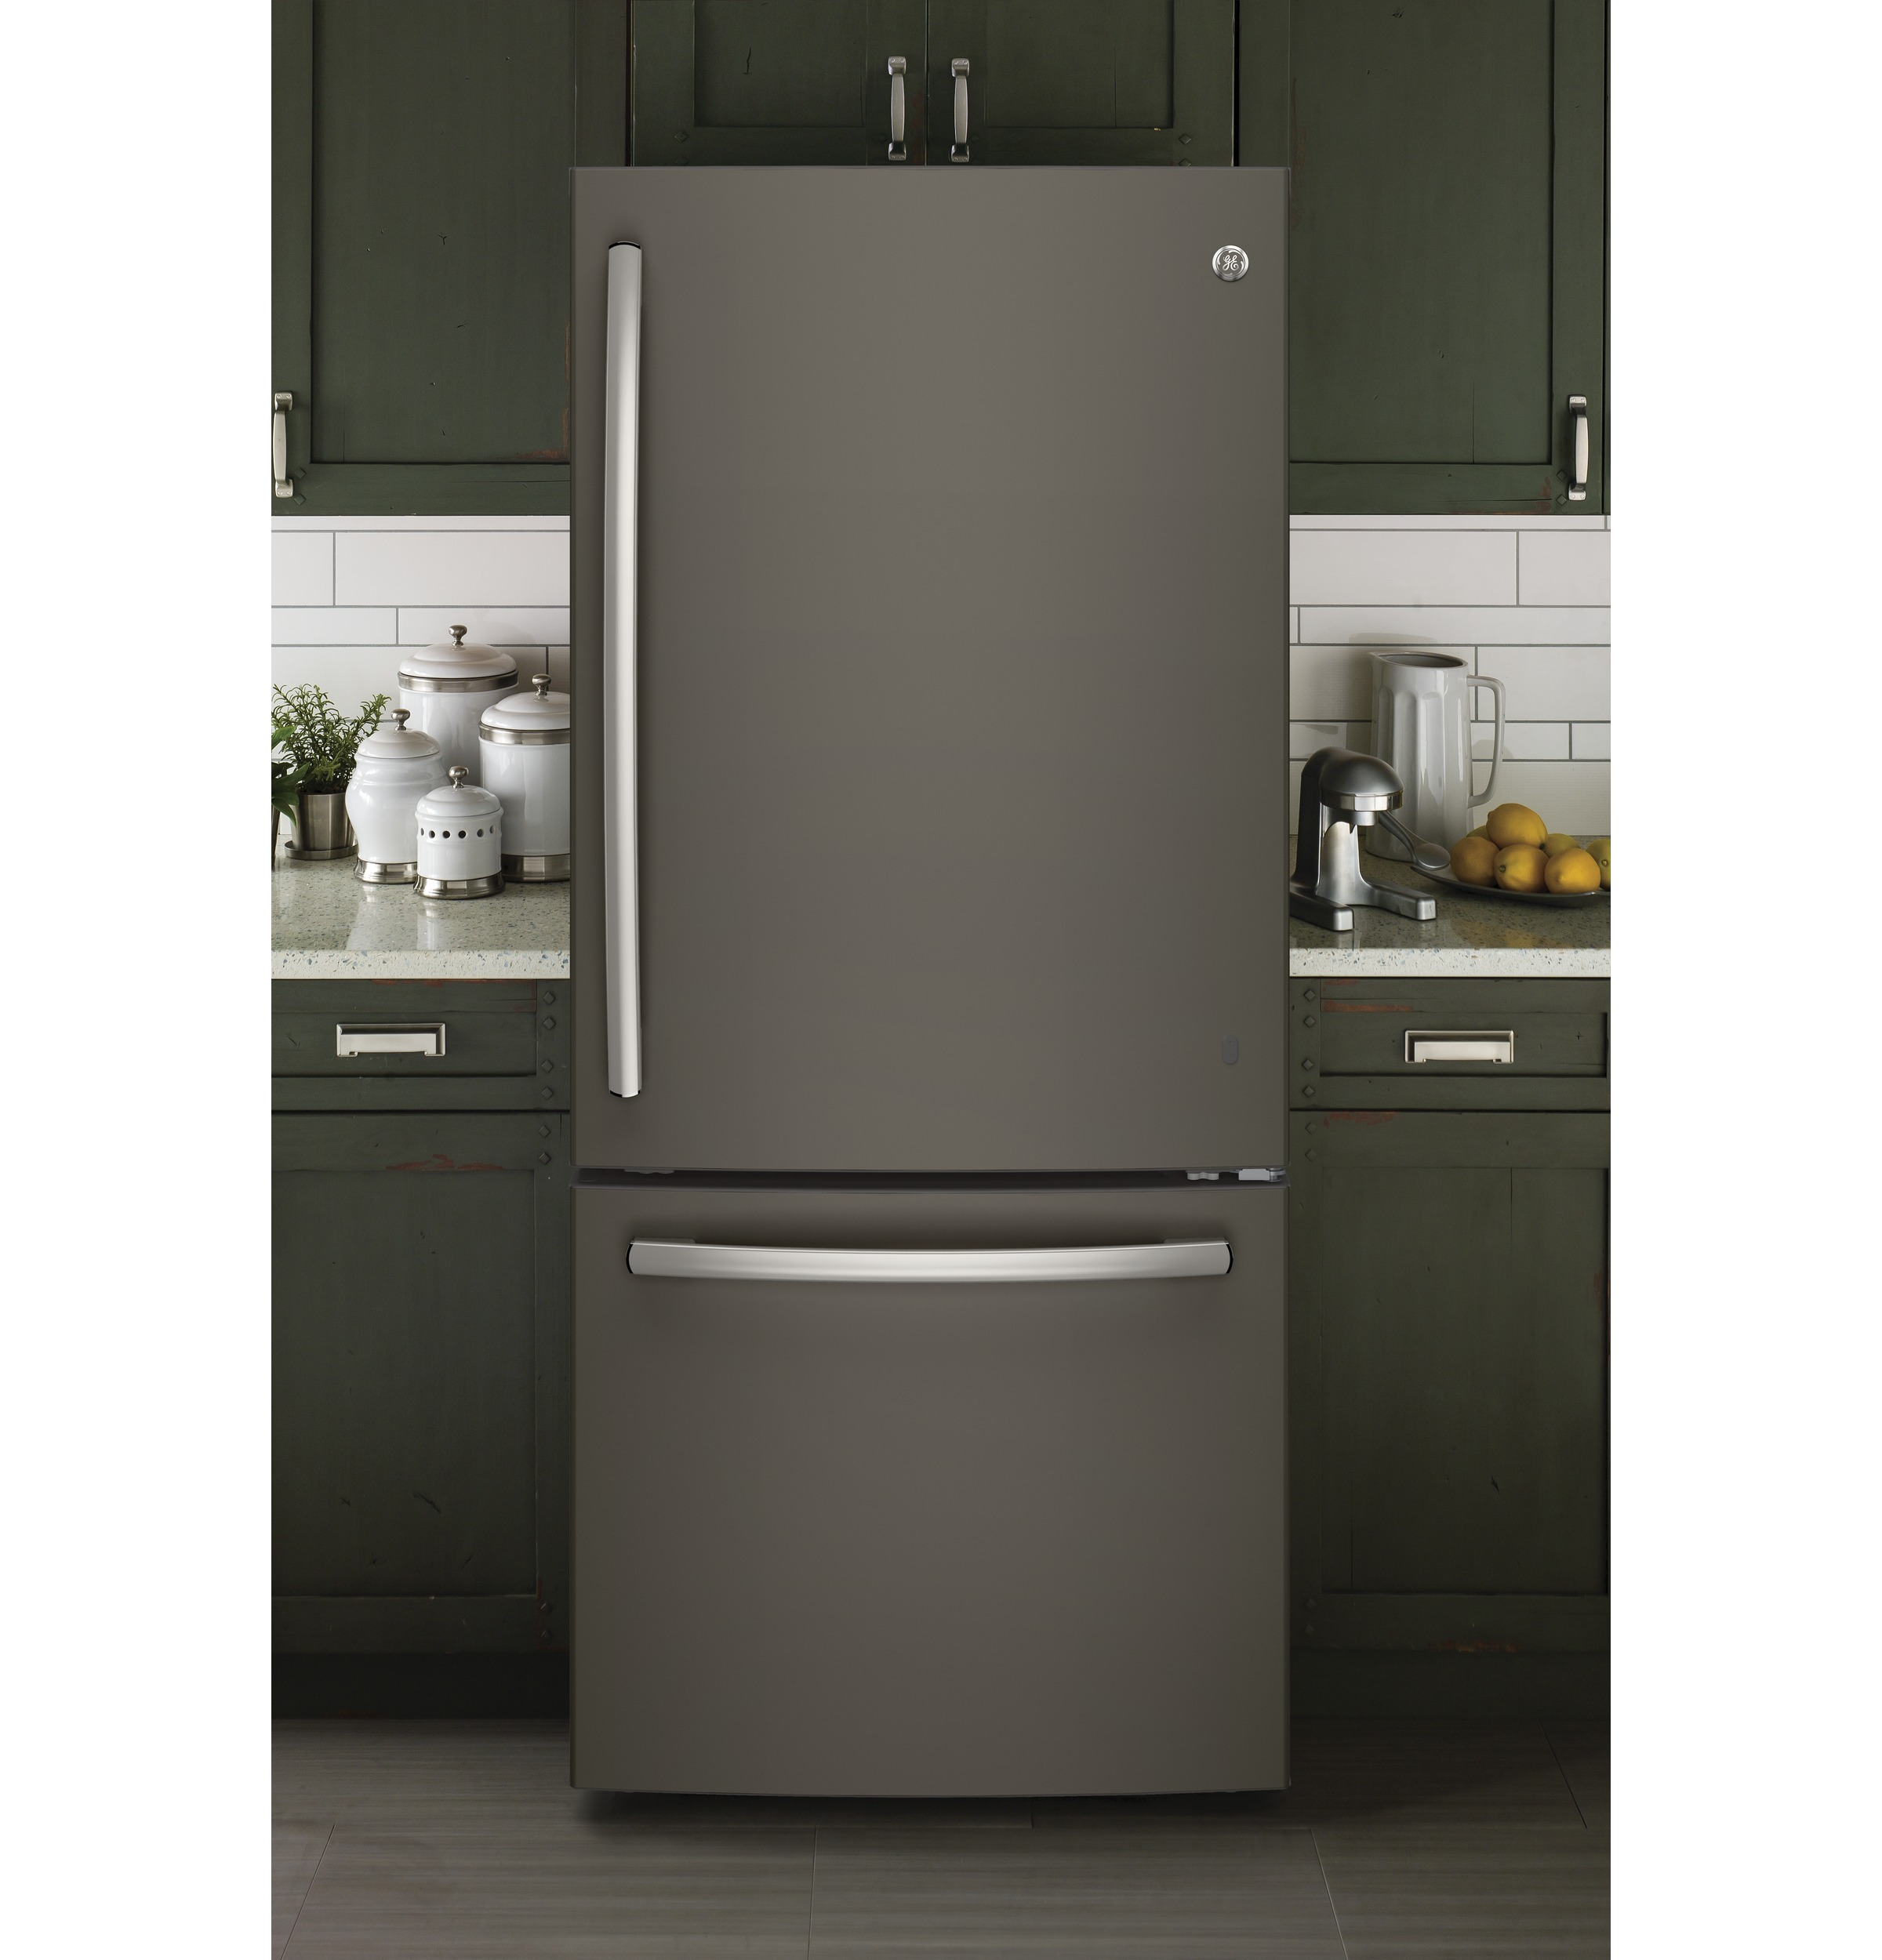 Design Ge Slate Refrigerator energy 20 9 cu ft bottom freezer refrigerator product image